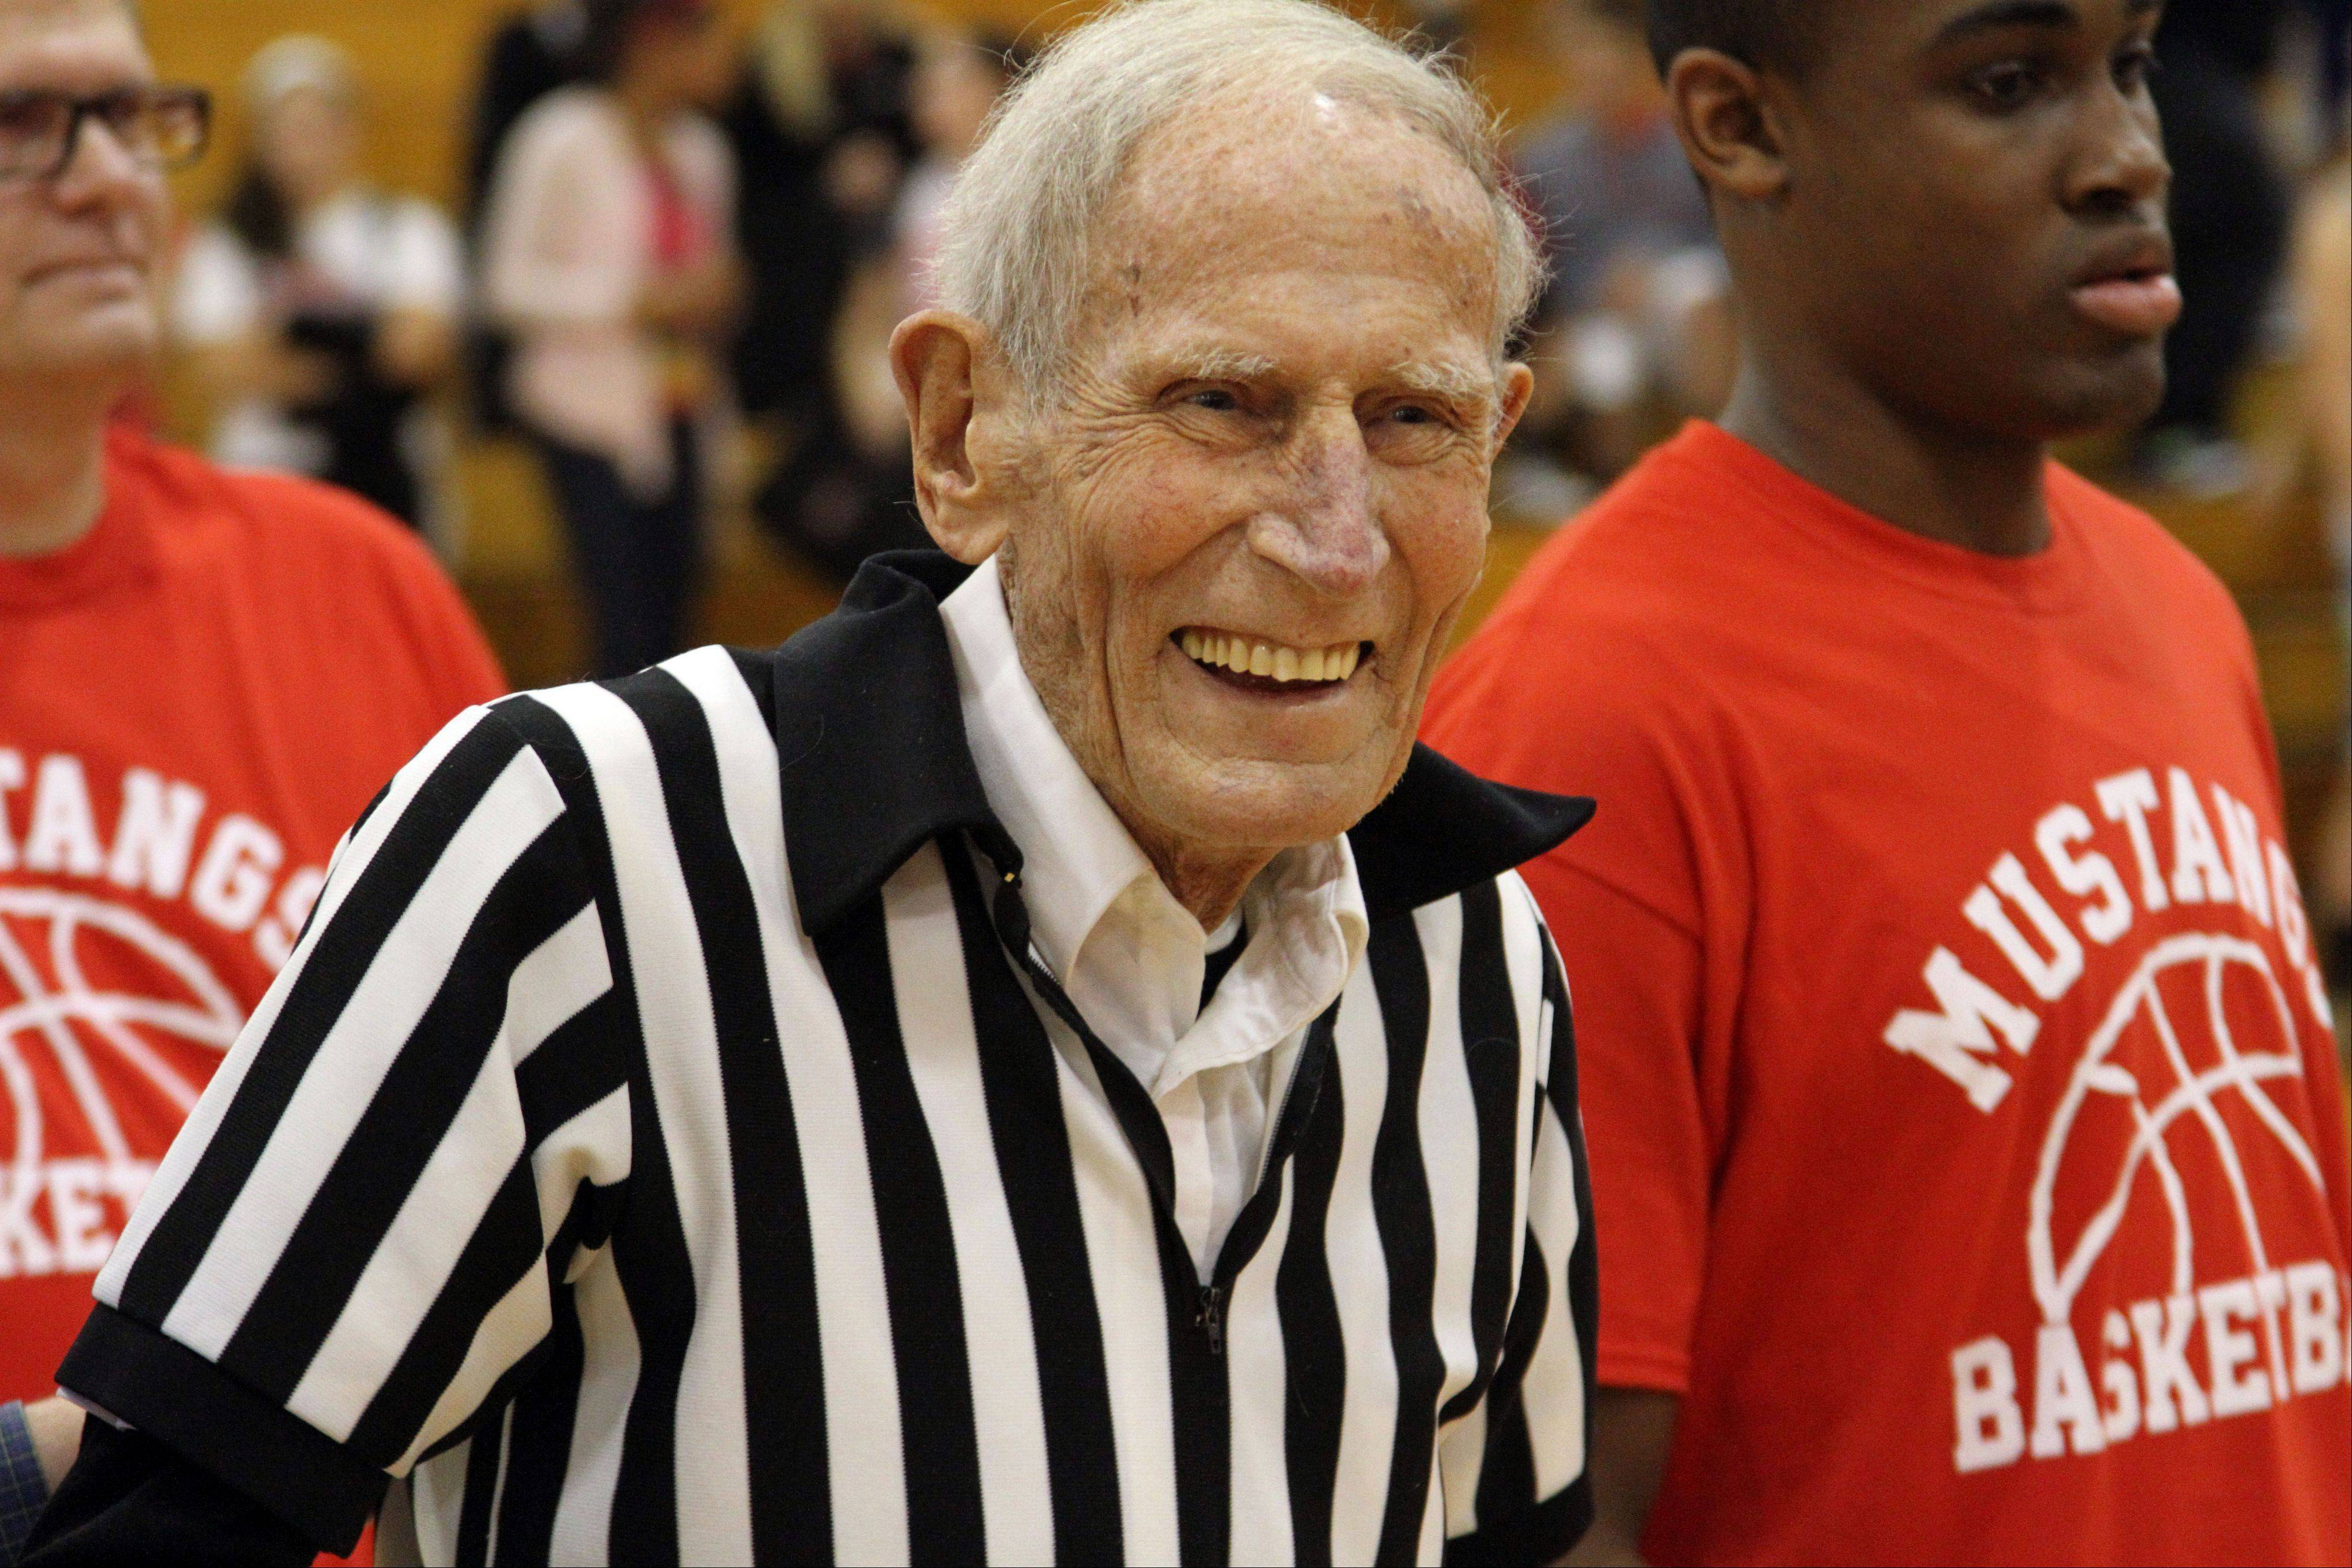 Mundelein basketball scorekeeper Jim Ackley is all smiles after being honored for 50 years of service before Tuesday night's varsity boys basketball game against Lake Zurich.